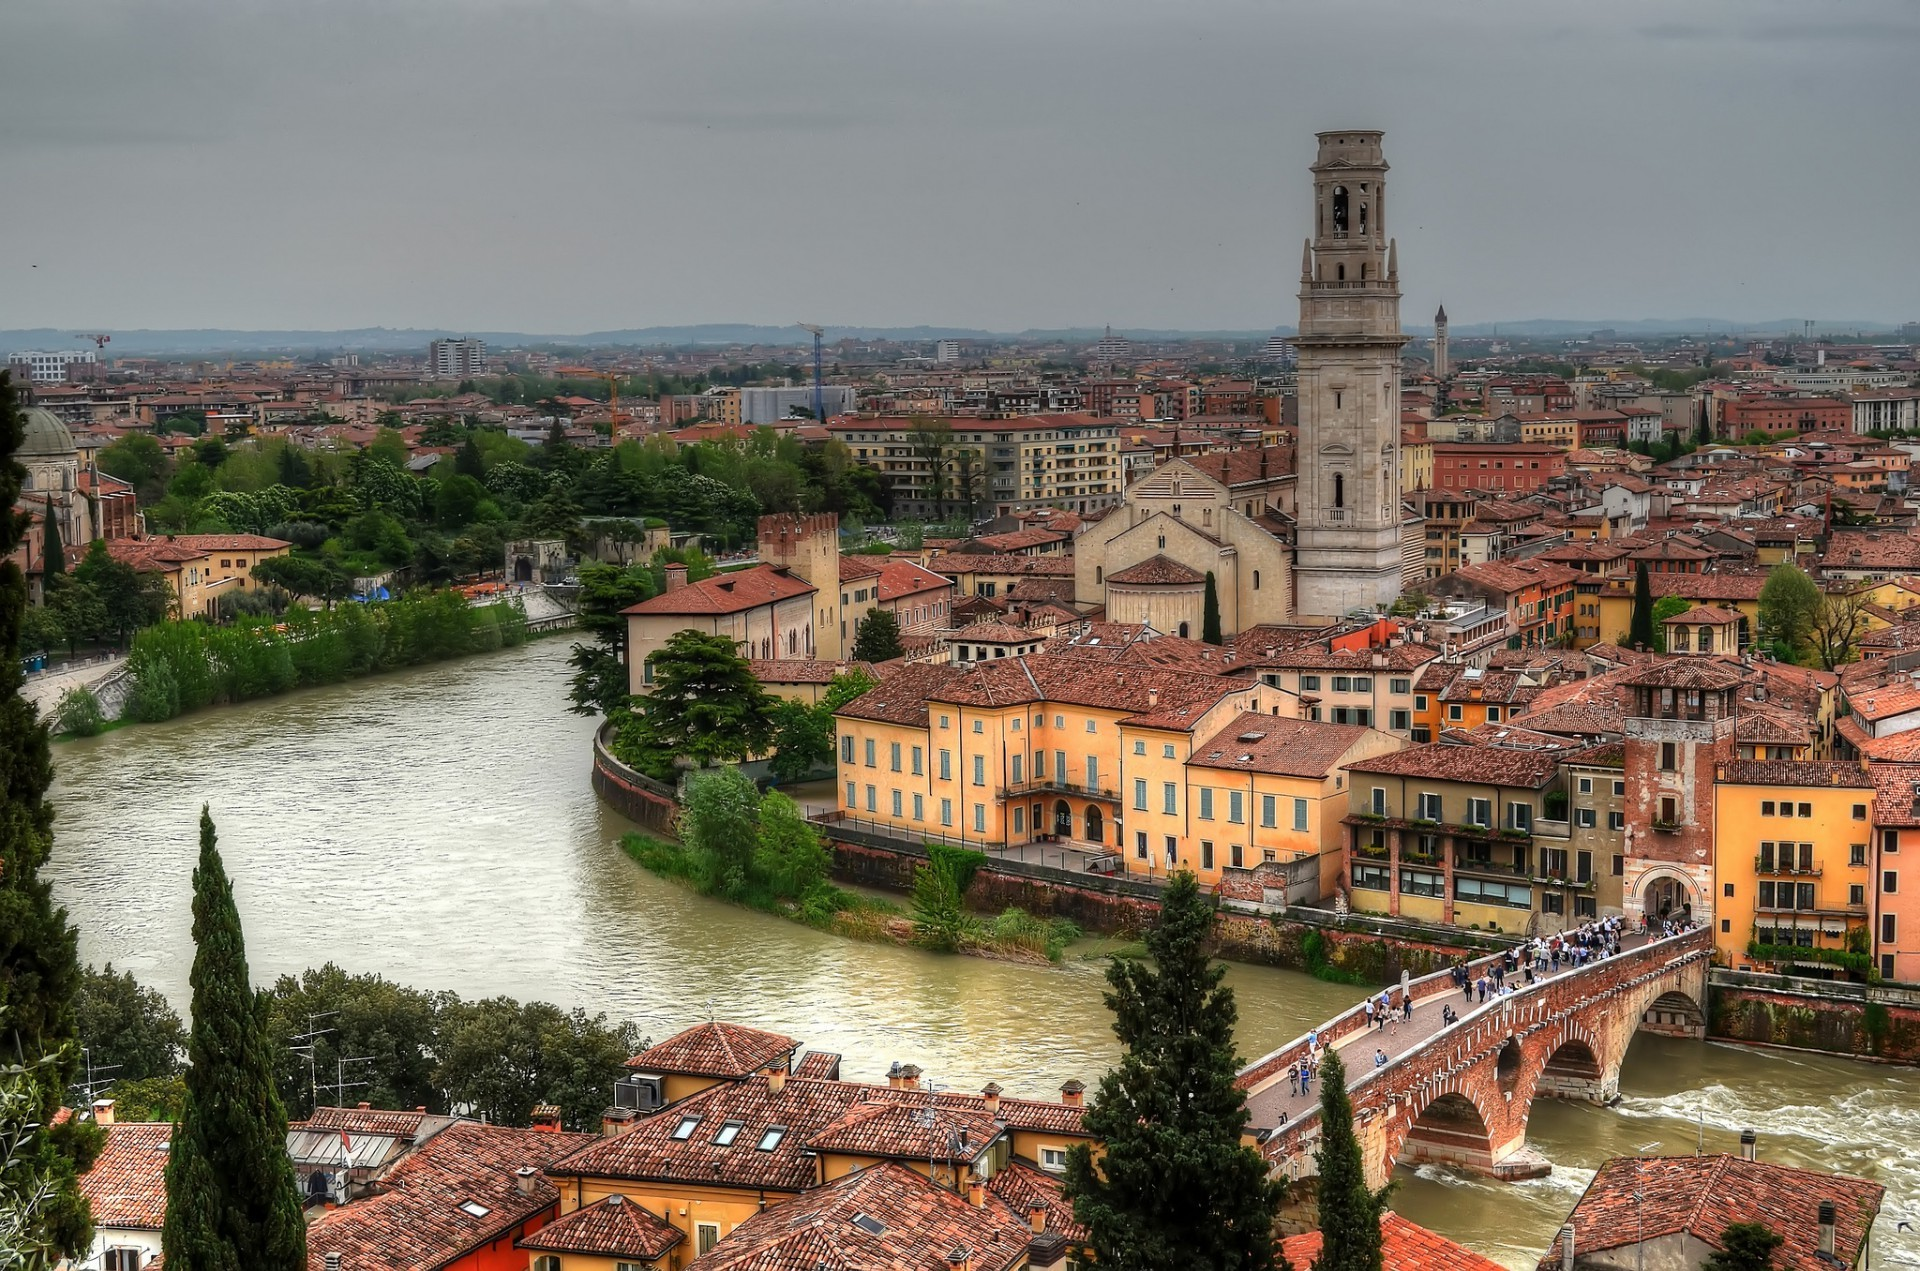 The Ponte Pietra over the river Adige at Verona in Italy